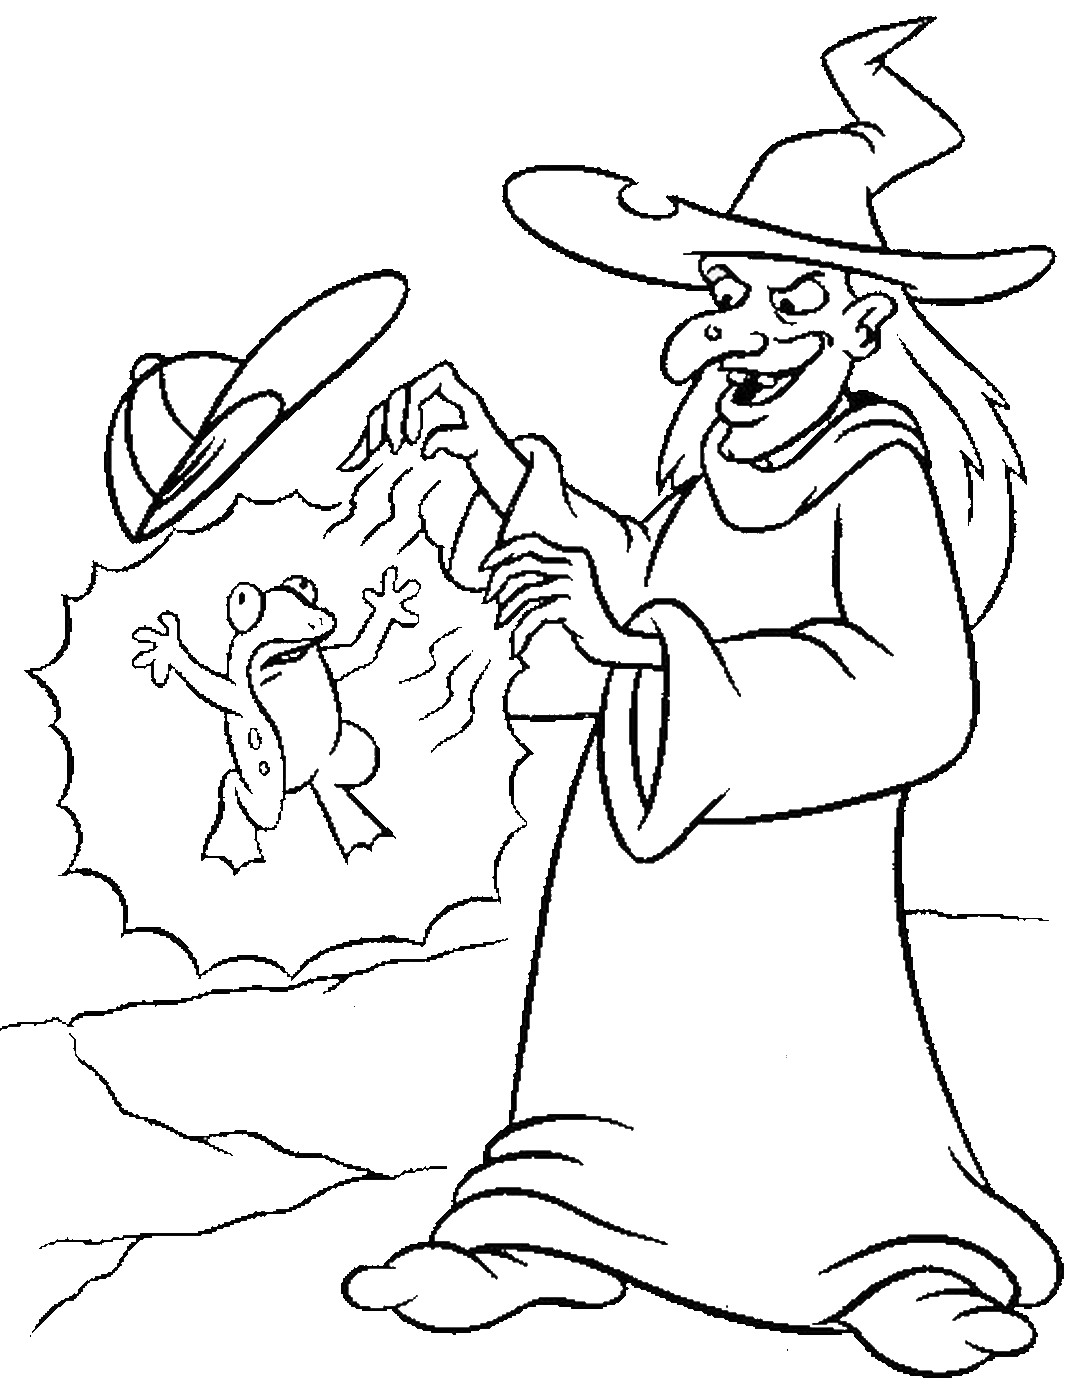 wizard of oz pictures to print wizard of oz coloring pages print pictures of oz to wizard